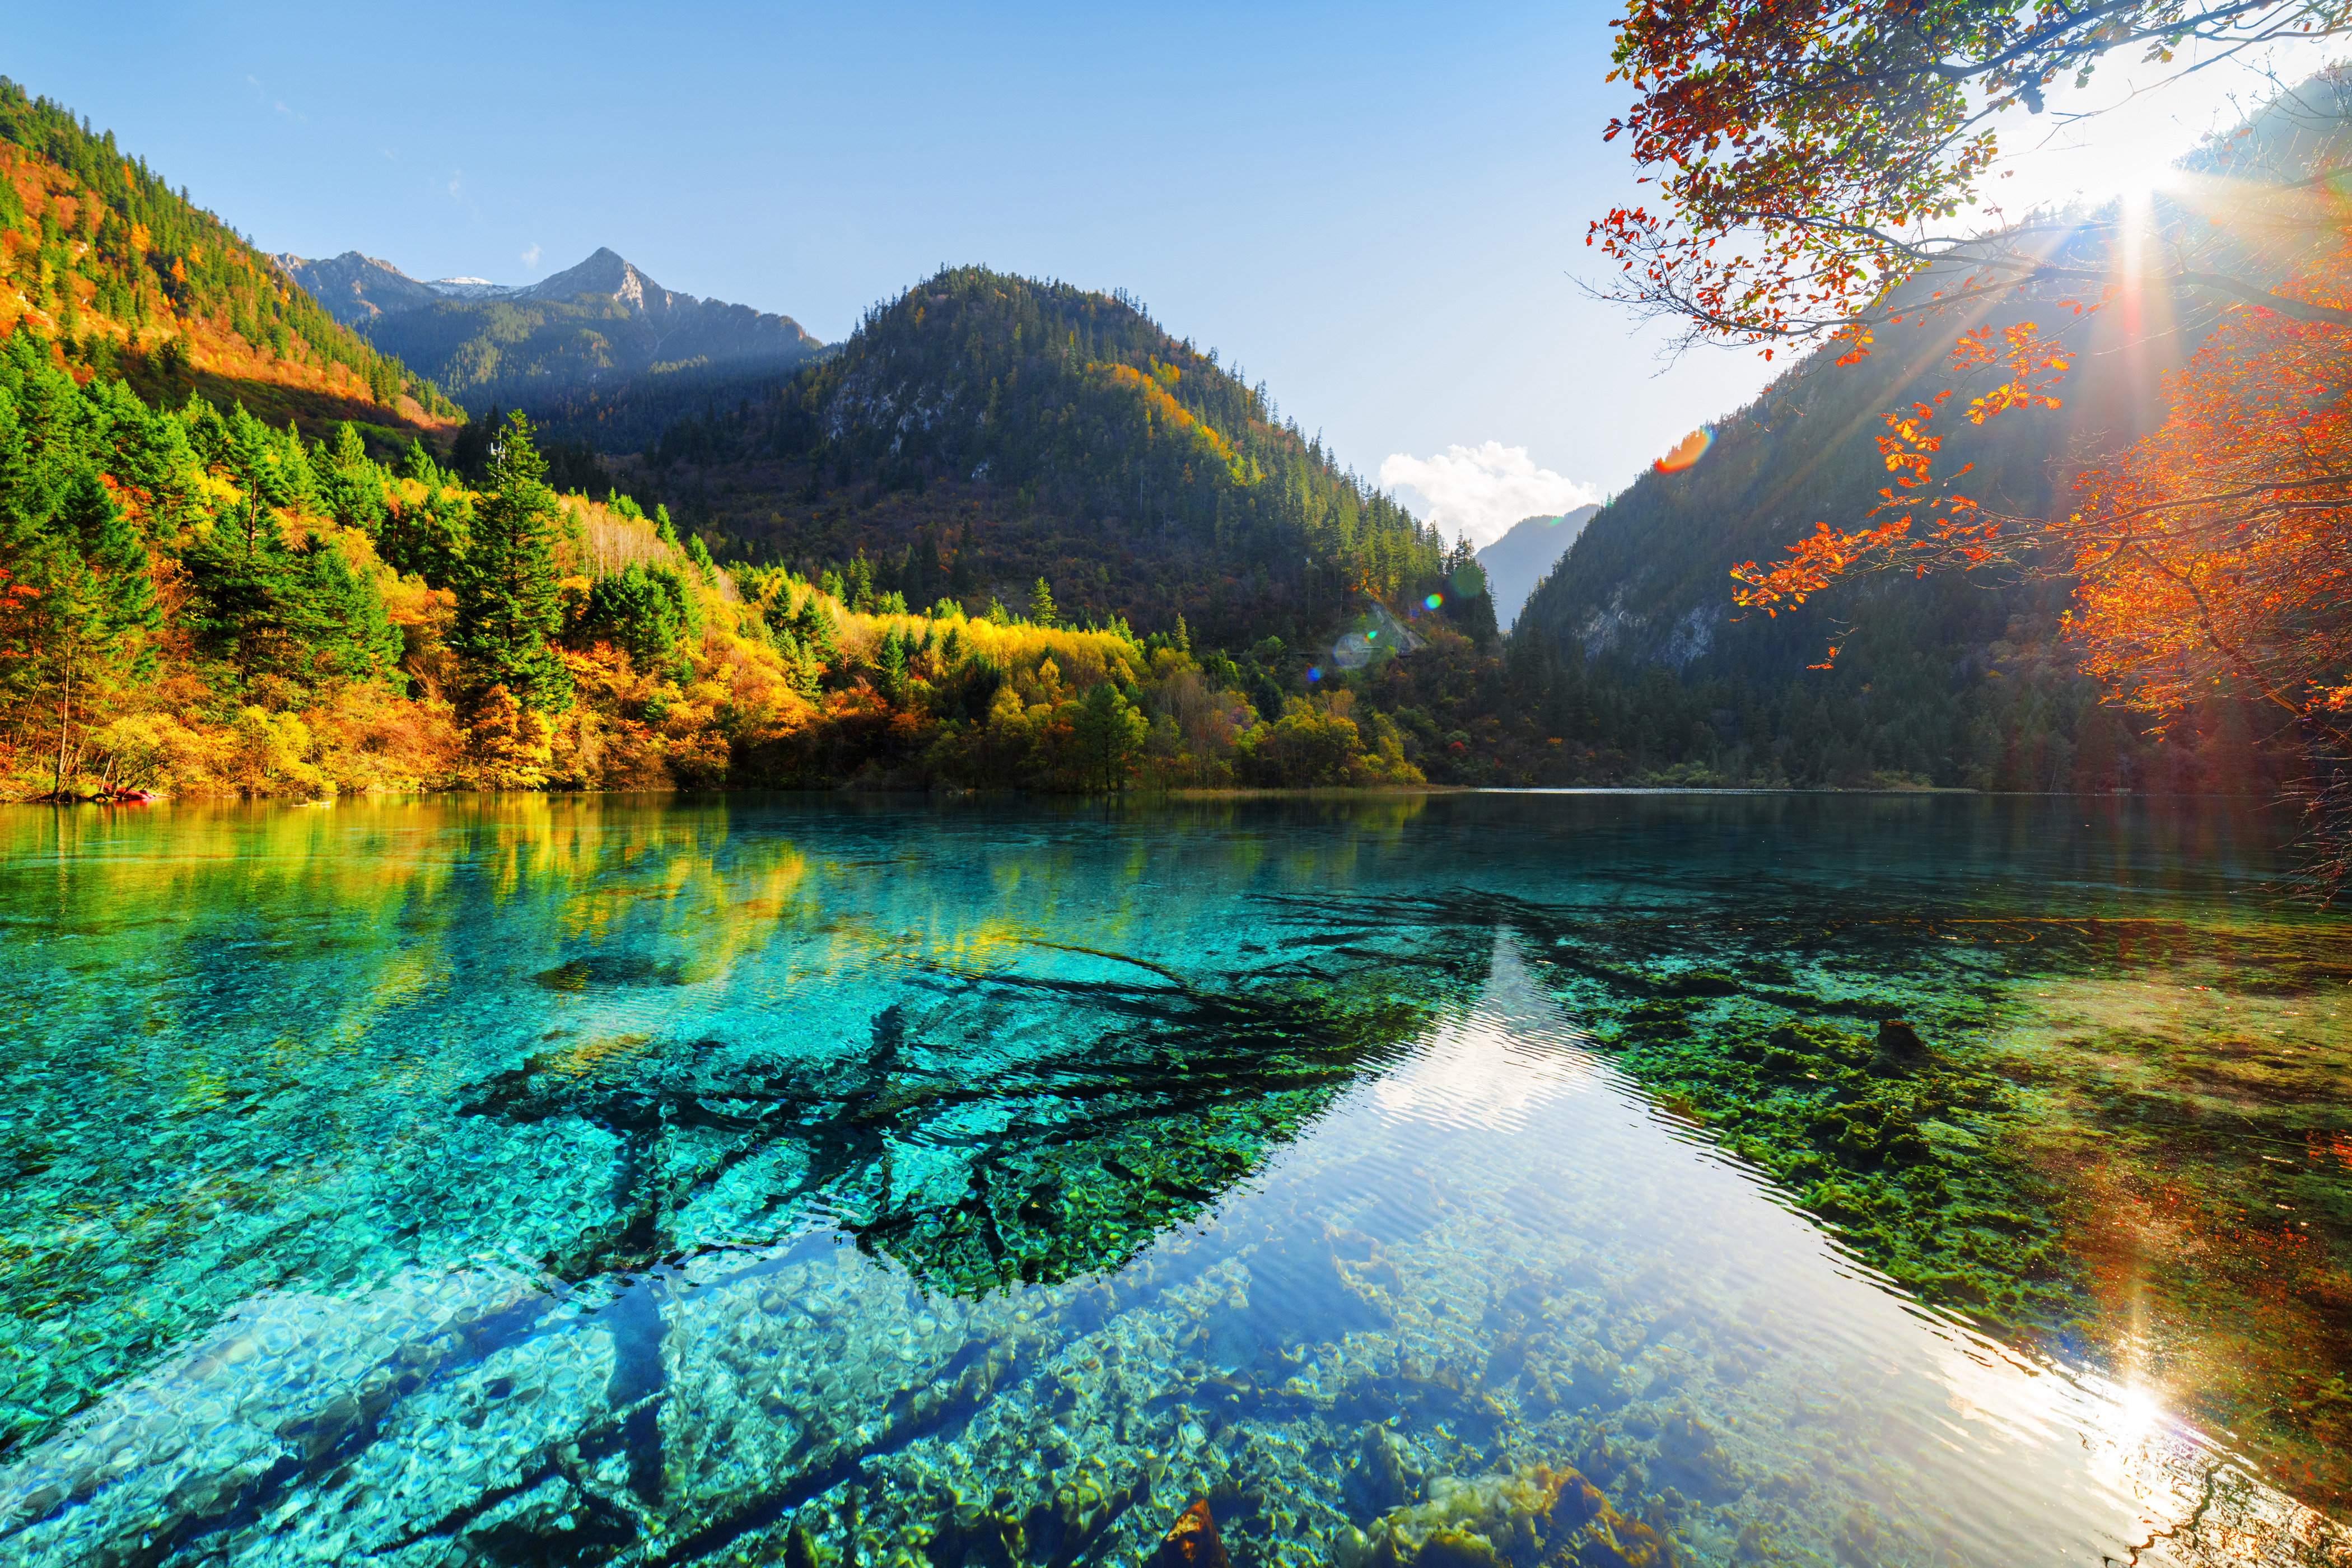 Lake Ultra Hd 4k, HD Nature, 4k Wallpapers, Images ...